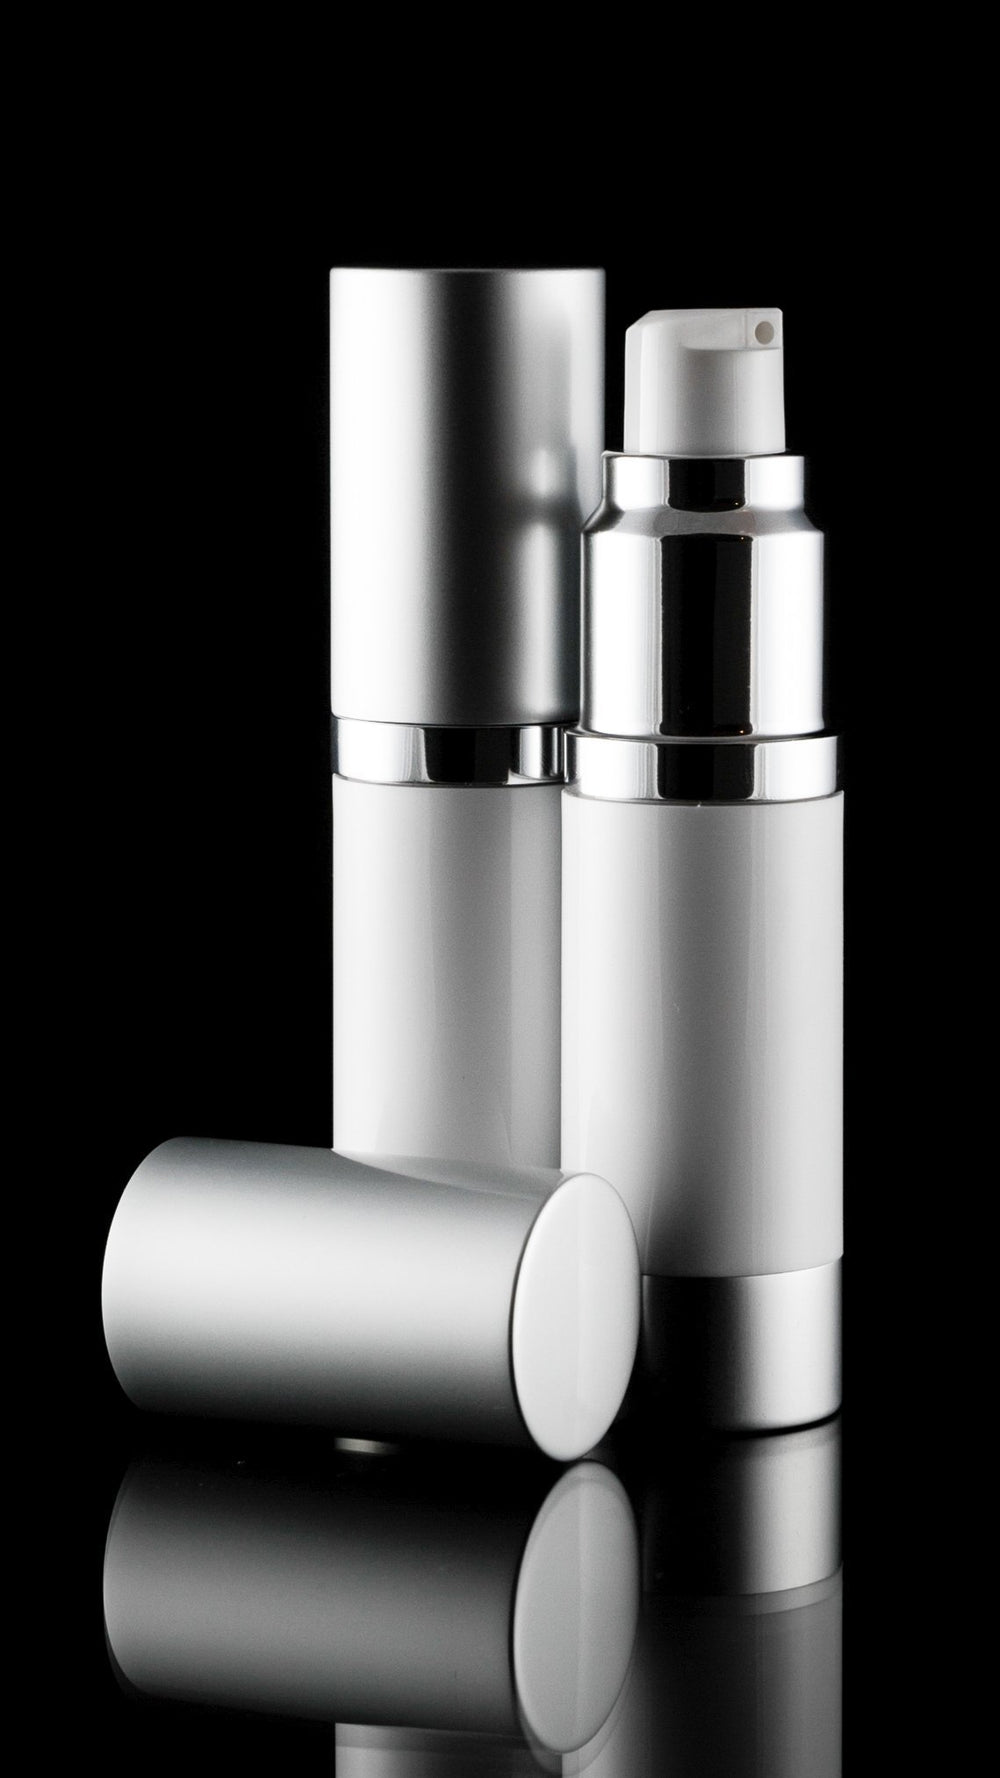 Airless Pump Bottle - Luxe 15 ML Airless Bottle Matte Silver With White Bottle